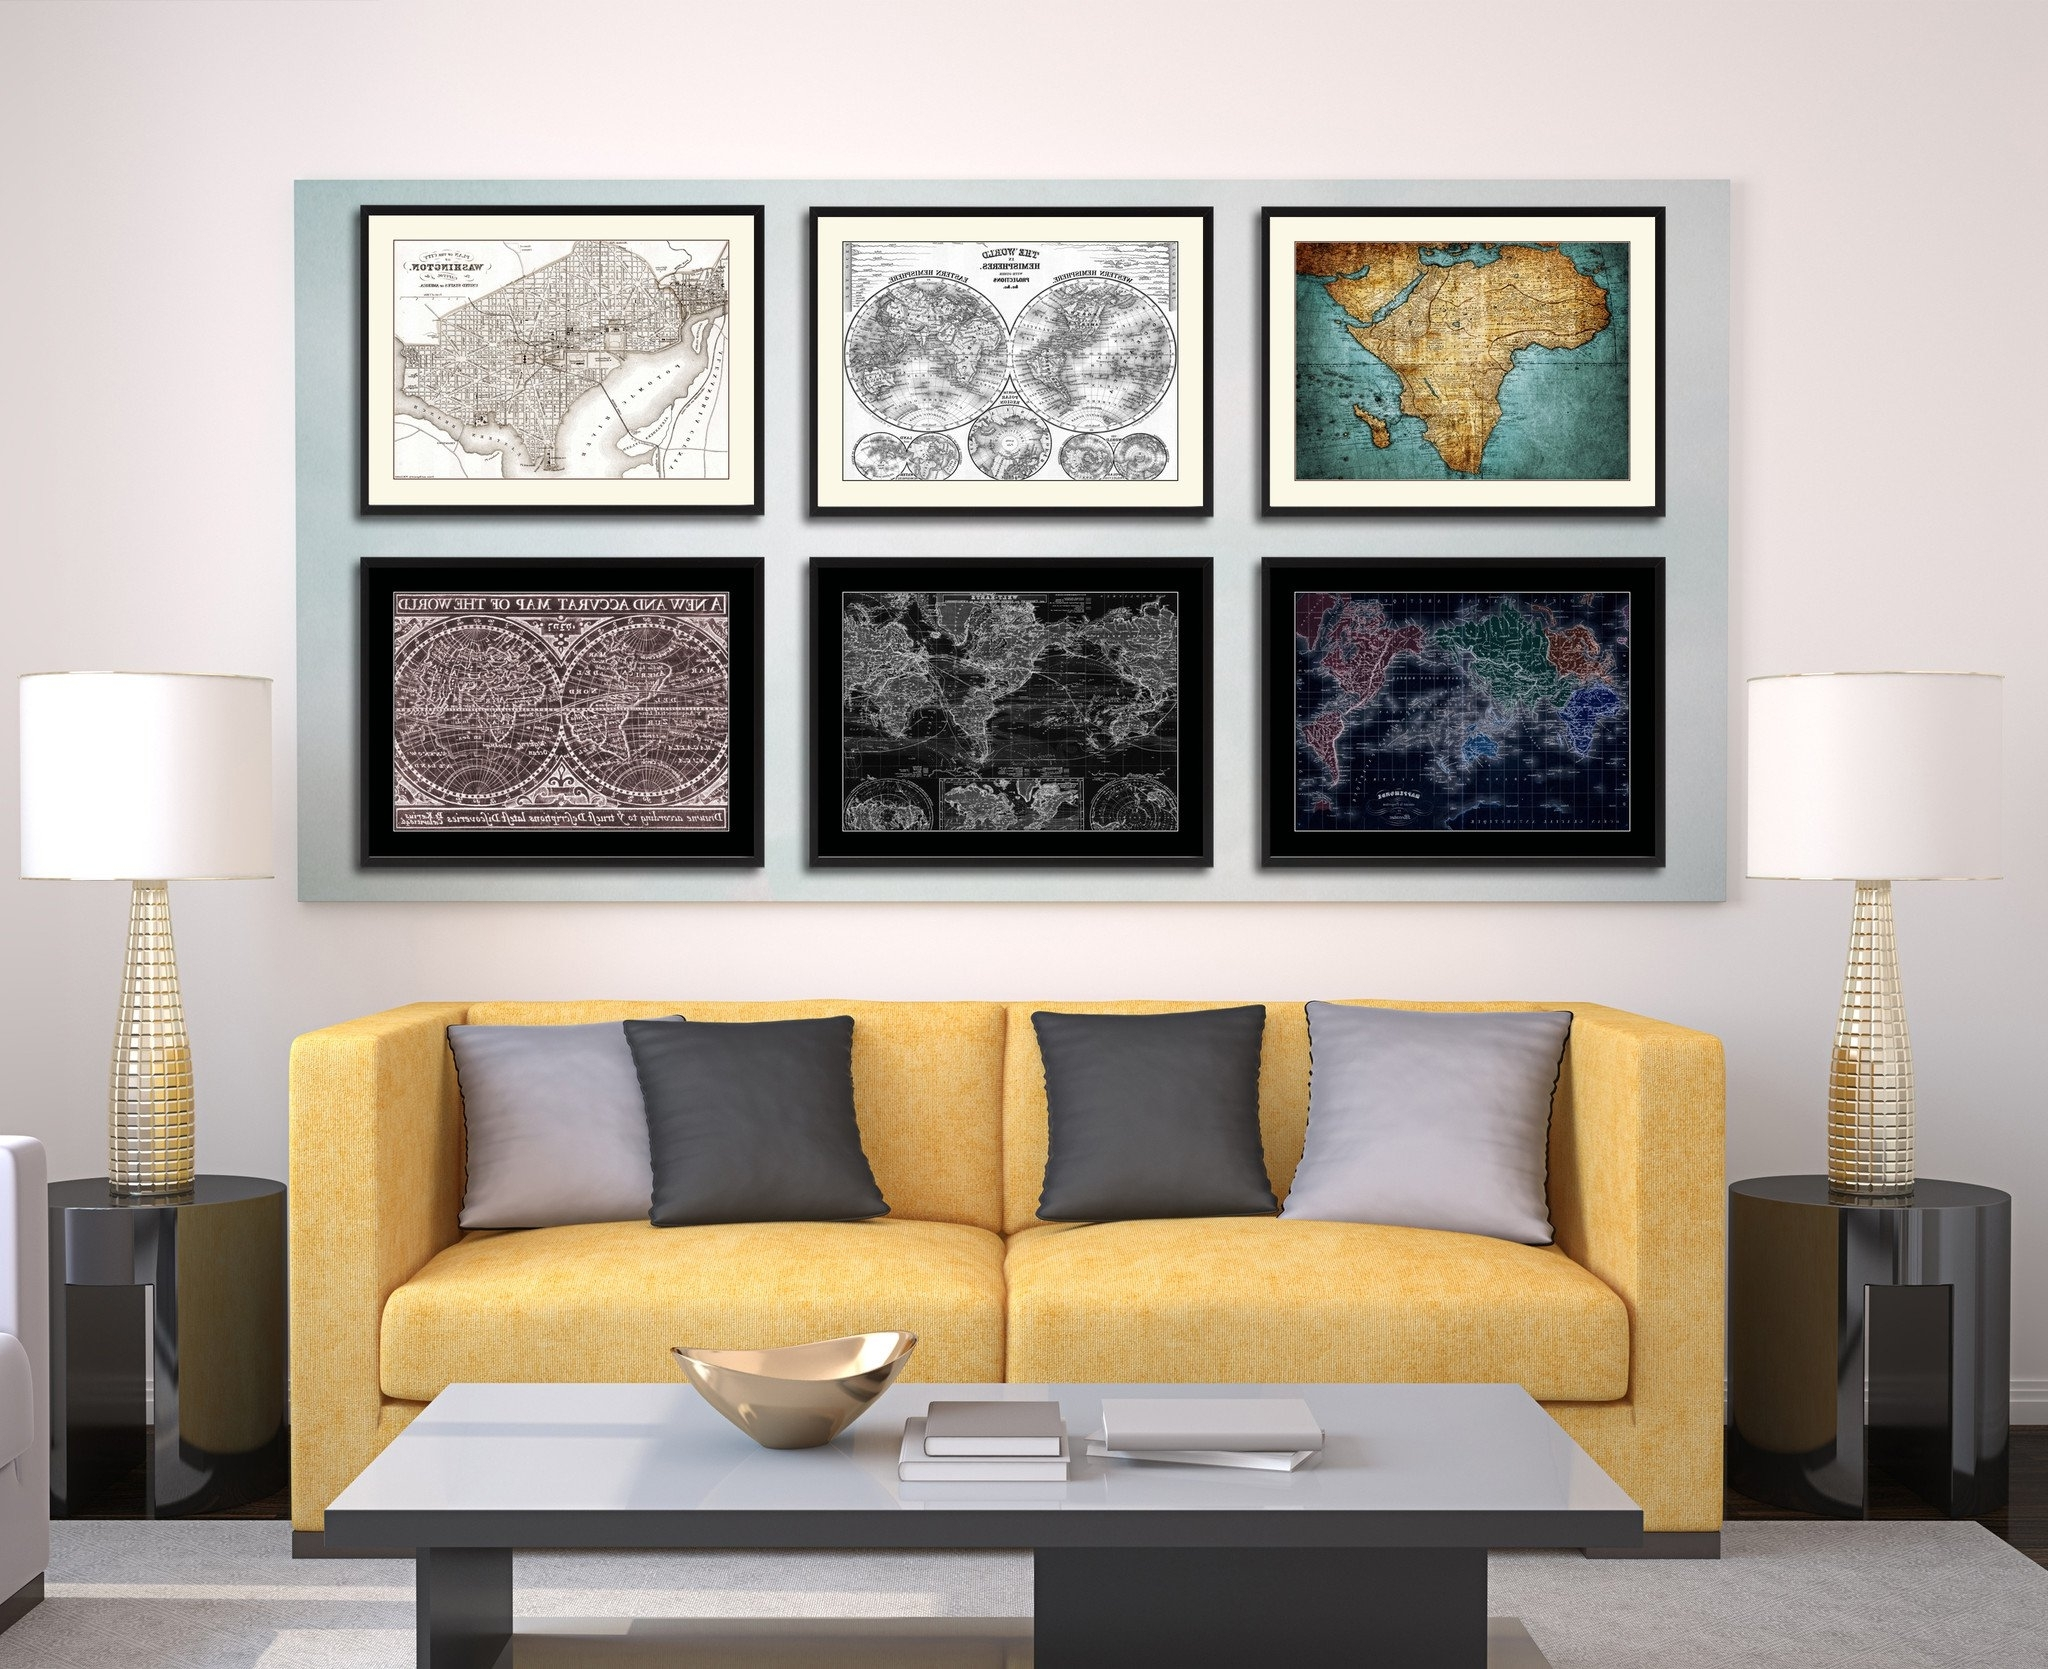 15 The Best Washington Dc Framed Art